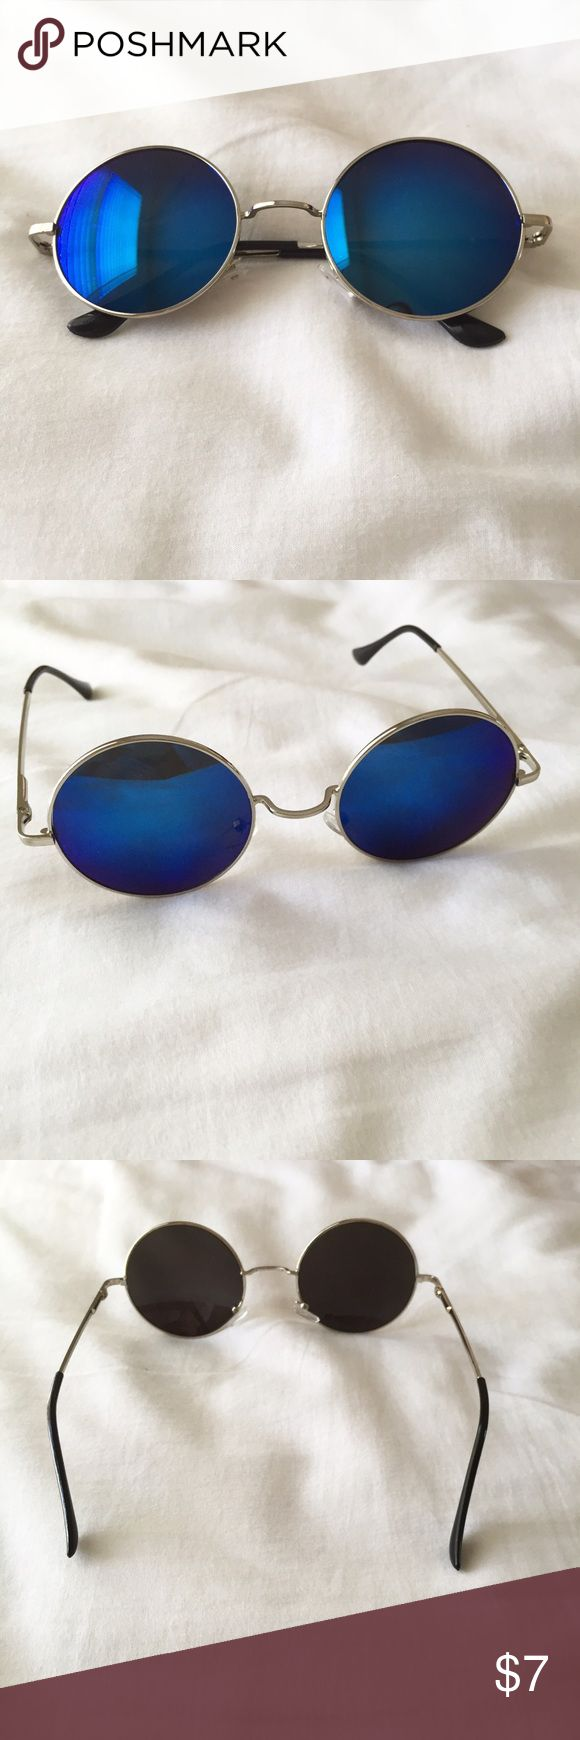 Blue Sunglasses Round blue reflective sunglasses. Color might slightly differ due to lighting. Accessories Sunglasses